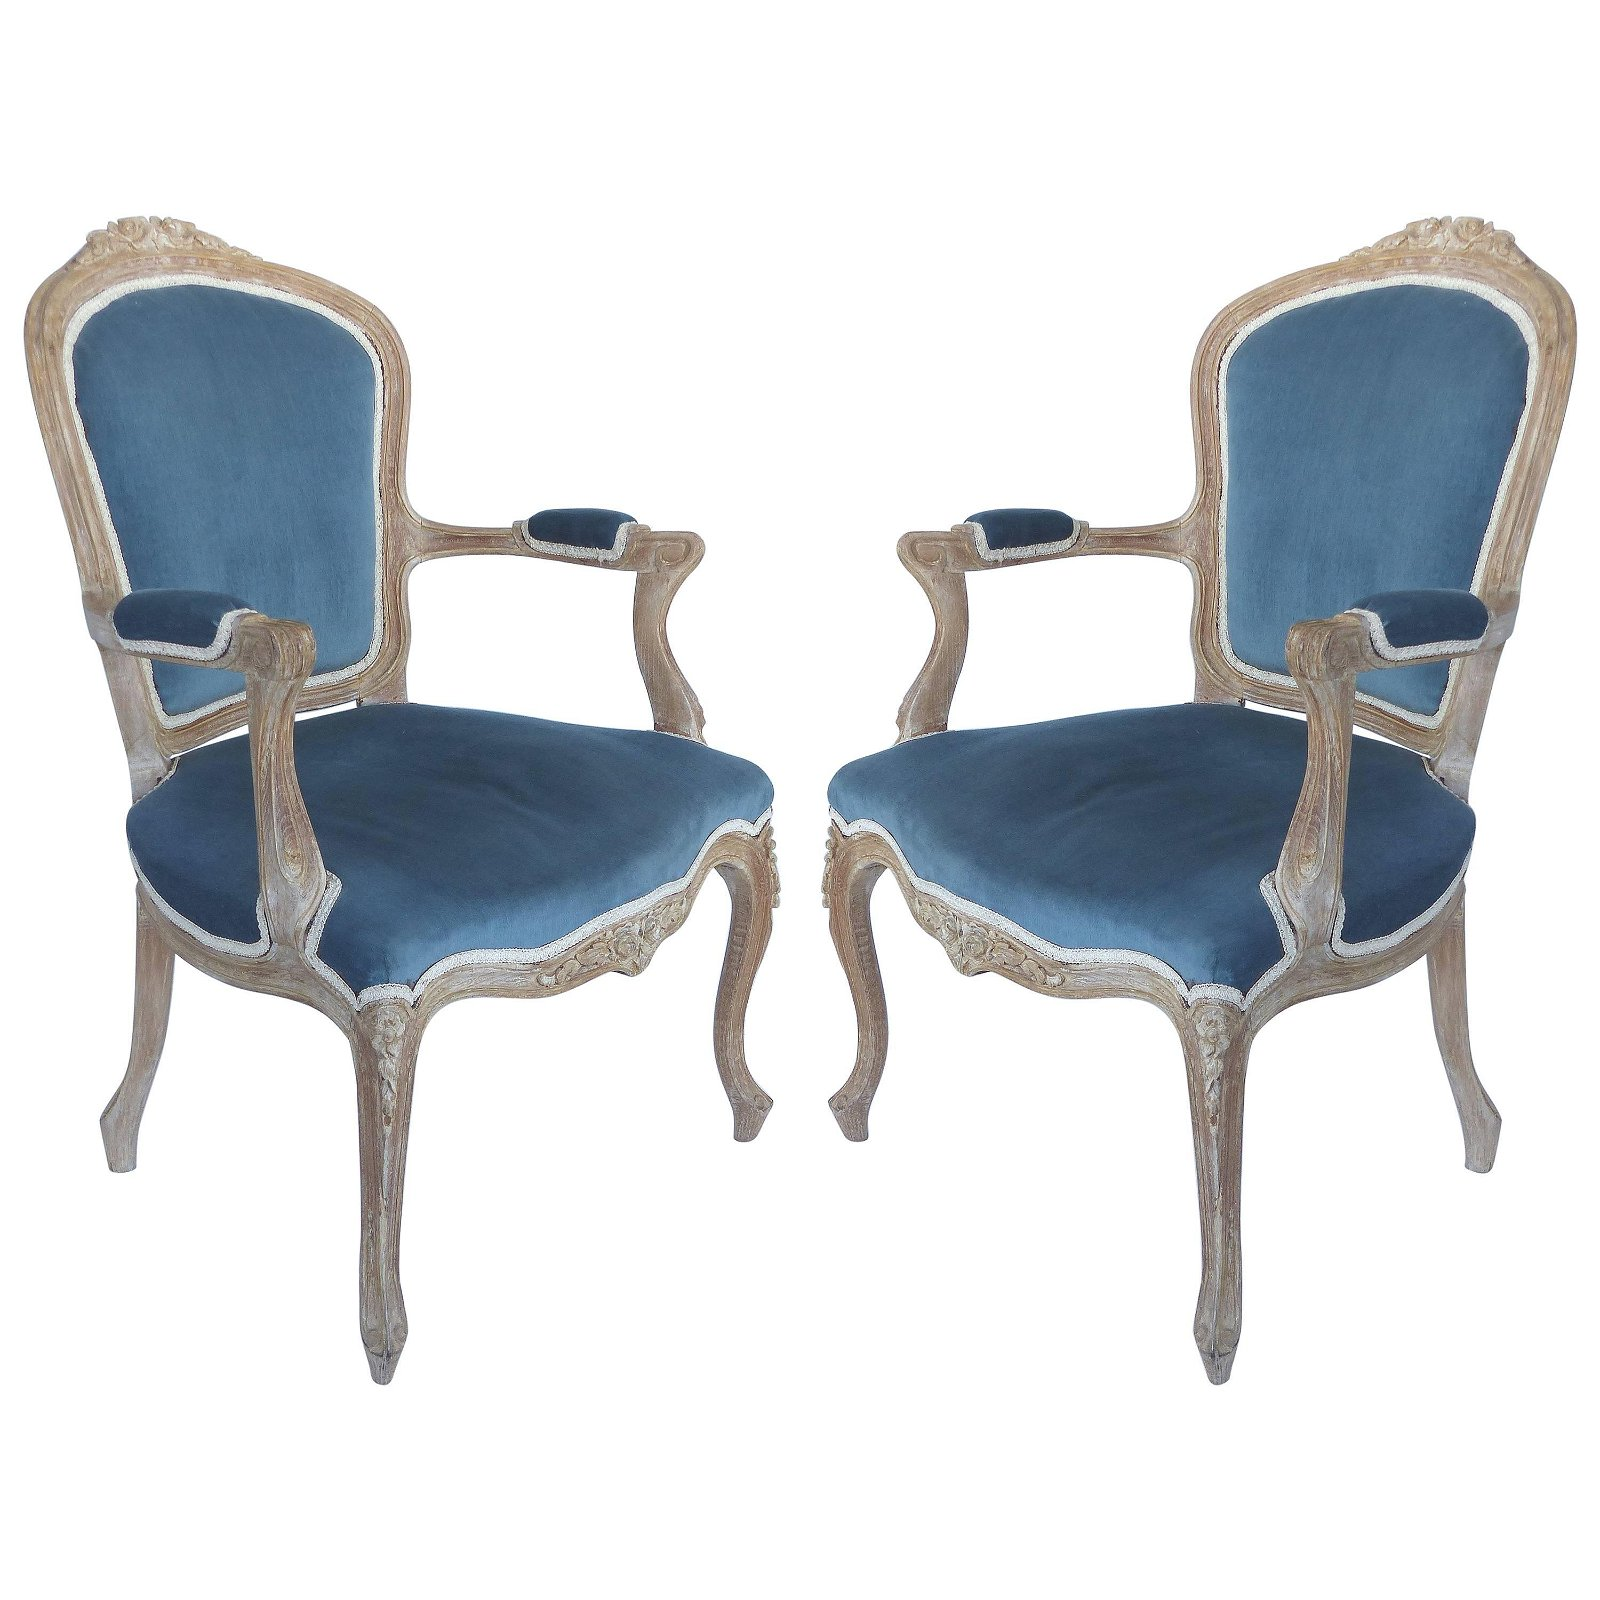 French Limed Louis XV Style Fauteuil Chairs with Velvet